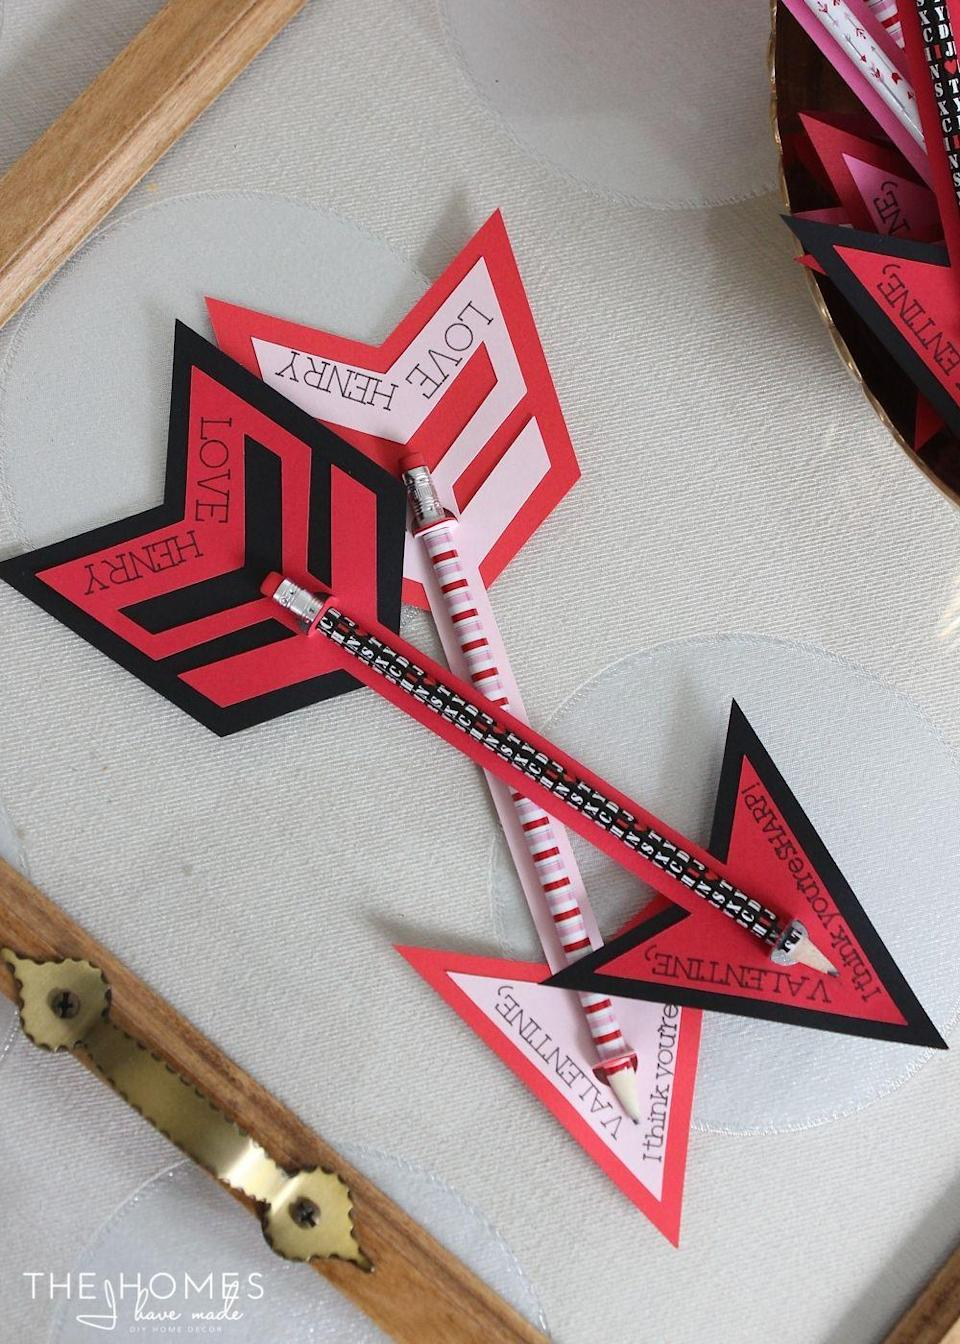 "<p>These pencil arrows make the perfect non-candy Valentine for kids to give their friends. You can use Valentine's Day-themed pencils for an added festive touch. </p><p><strong>See more at <a href=""https://thehomesihavemade.com/2015/02/pencil-arrow-valentines/"" rel=""nofollow noopener"" target=""_blank"" data-ylk=""slk:The Homes I Have Made"" class=""link rapid-noclick-resp"">The Homes I Have Made</a>. </strong></p><p><a class=""link rapid-noclick-resp"" href=""https://go.redirectingat.com?id=74968X1596630&url=https%3A%2F%2Fwww.walmart.com%2Fsearch%2F%3Fquery%3Dvalentines%2Bday%2Bpencils&sref=https%3A%2F%2Fwww.thepioneerwoman.com%2Fhome-lifestyle%2Fcrafts-diy%2Fg35084525%2Fdiy-valentines-day-cards%2F"" rel=""nofollow noopener"" target=""_blank"" data-ylk=""slk:SHOP VALENTINE'S DAY PENCILS"">SHOP VALENTINE'S DAY PENCILS</a></p>"